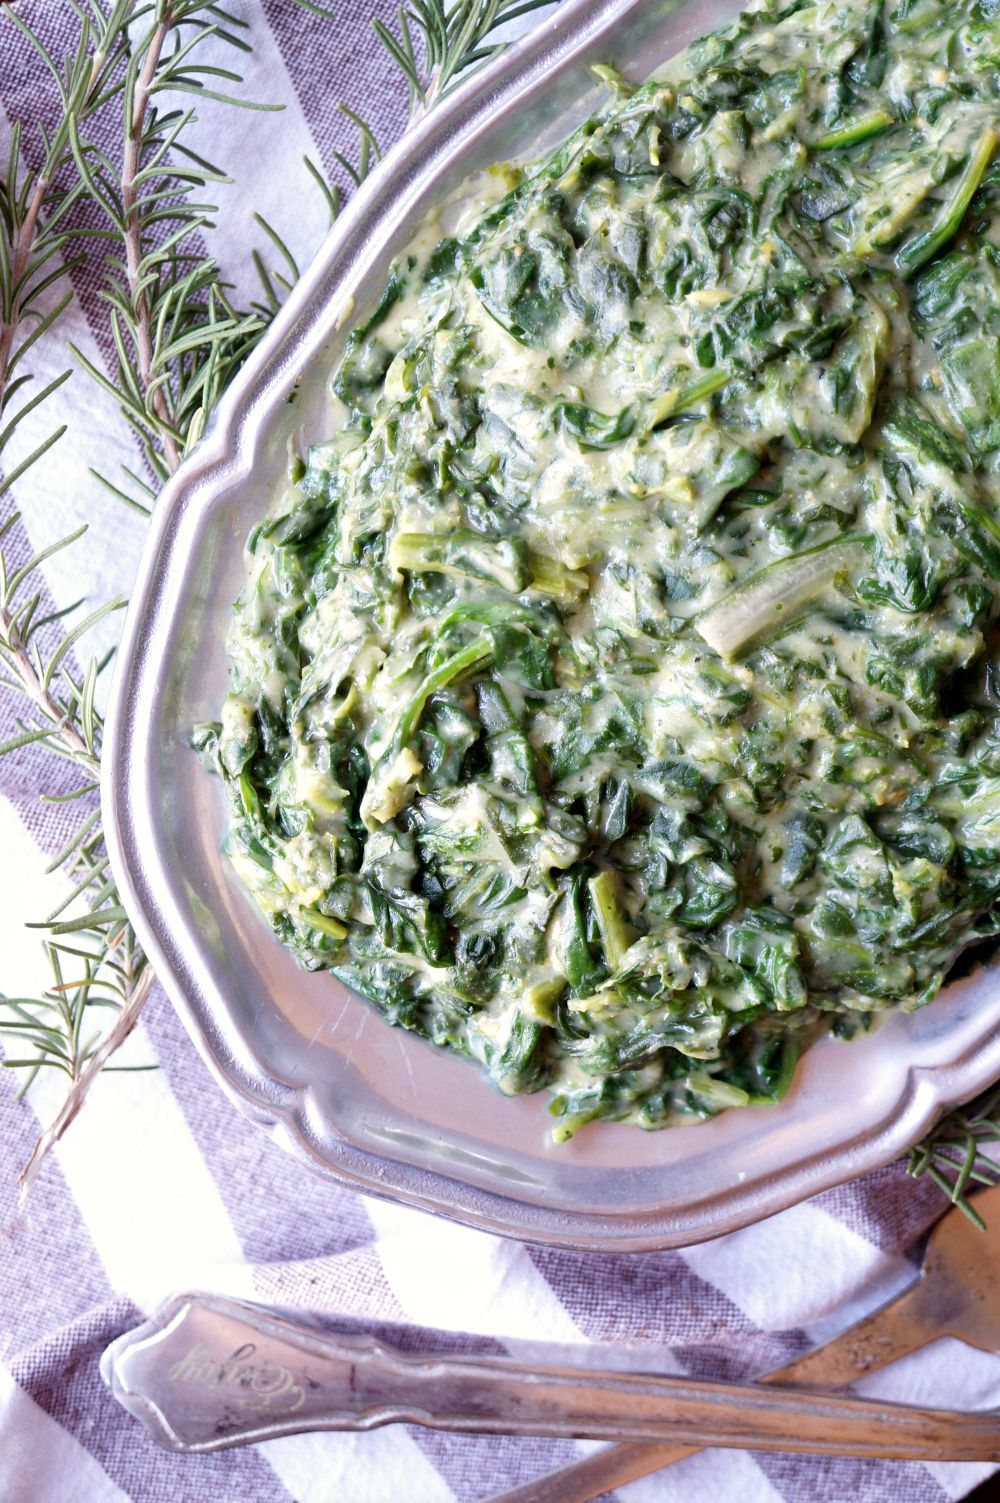 Vegan Creamed Greens Spinach Kale And Chard